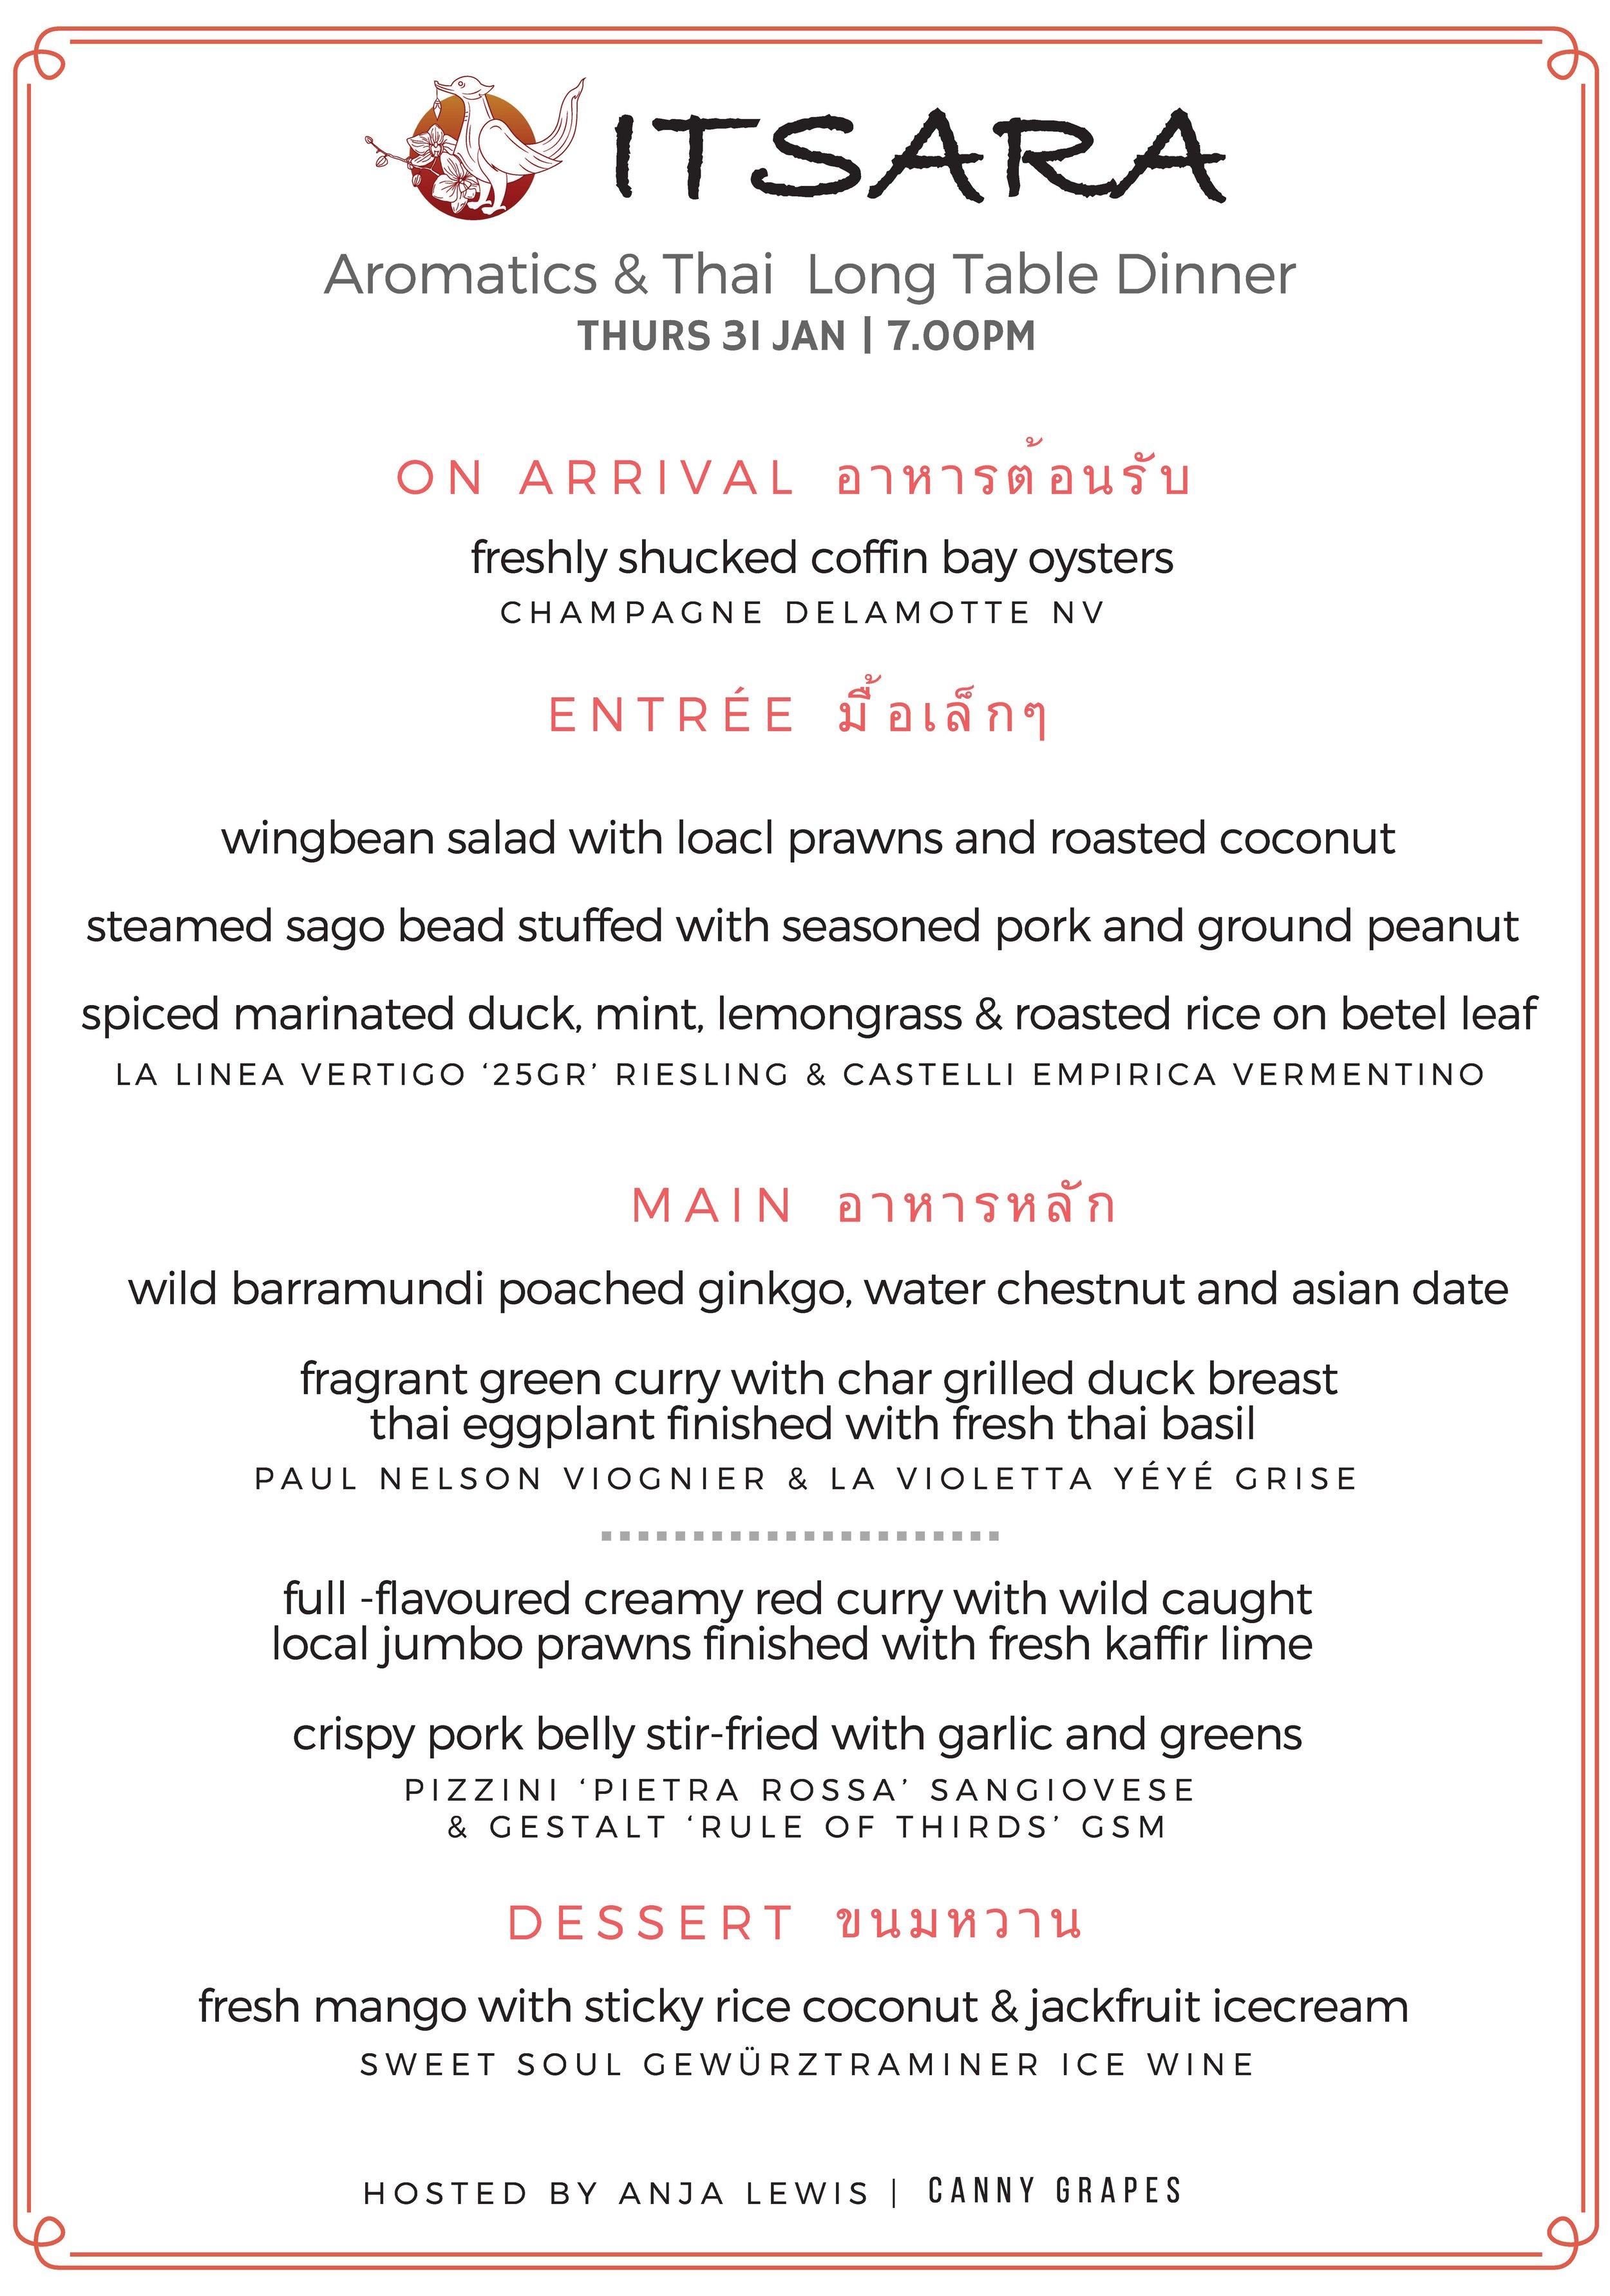 Itsara & Canny Grapes Aromatics and Thai Long Table Dinner Perth